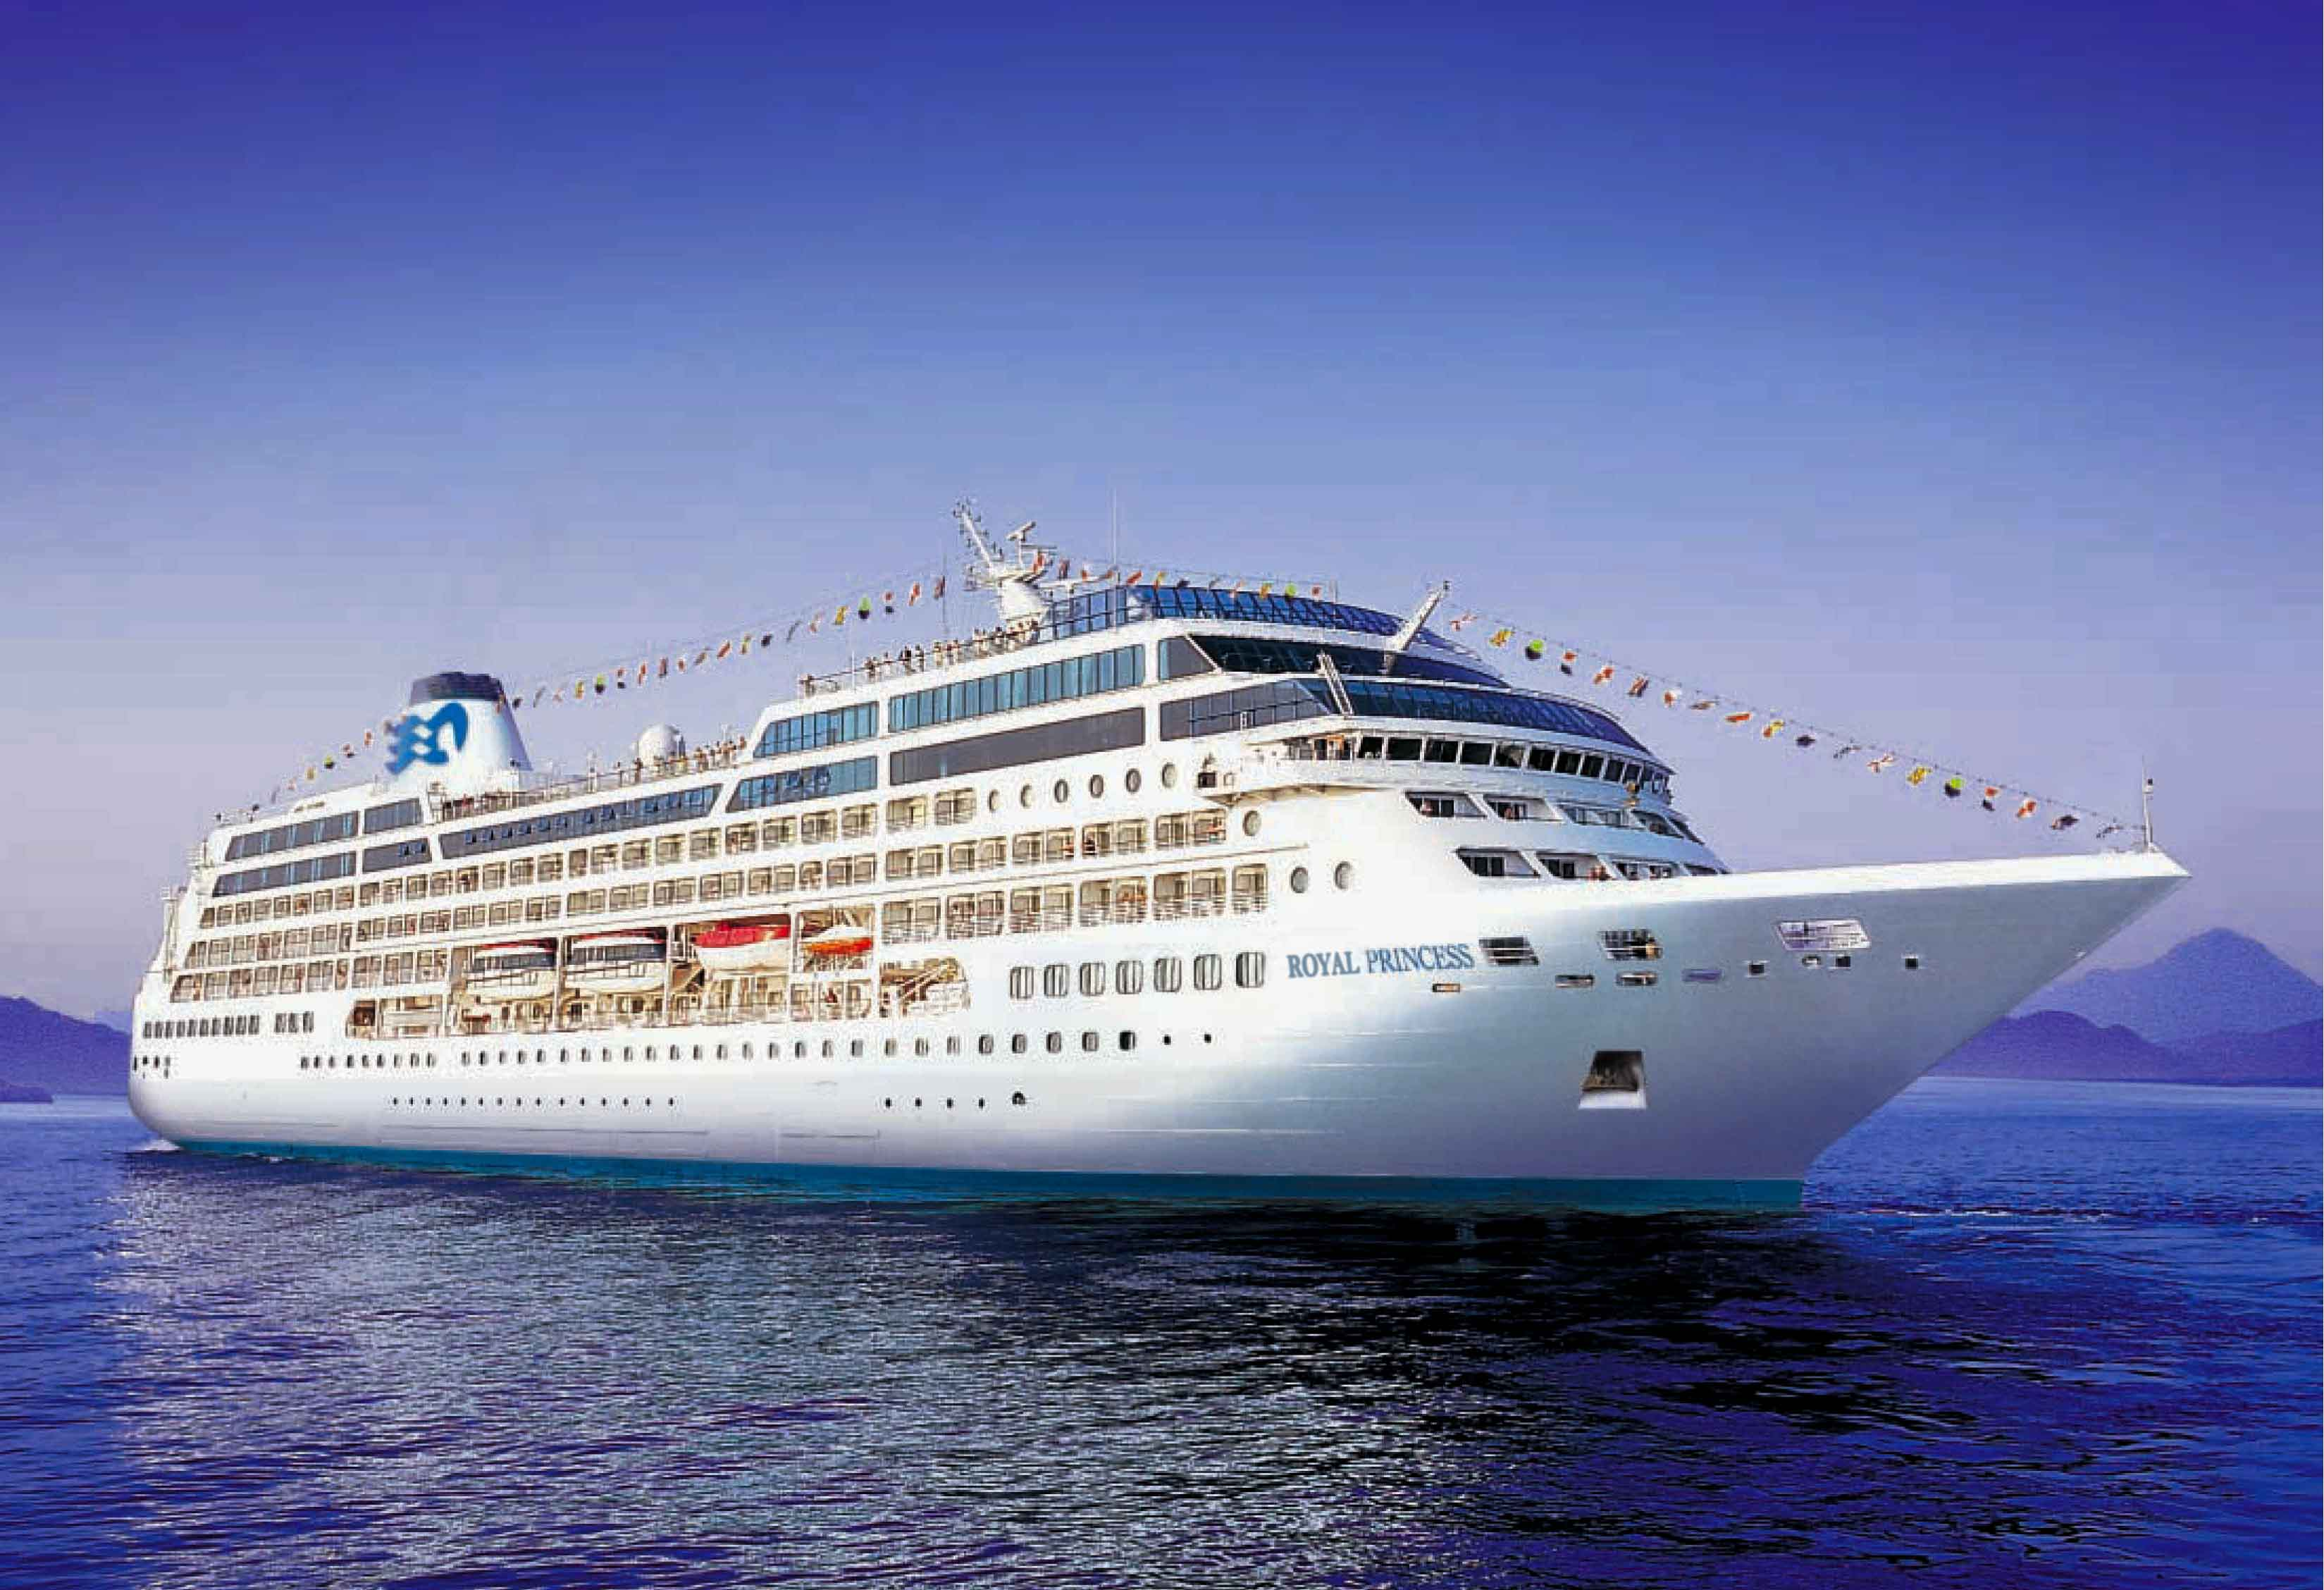 Cruise the Mediterranean: trip on the Royal Princess